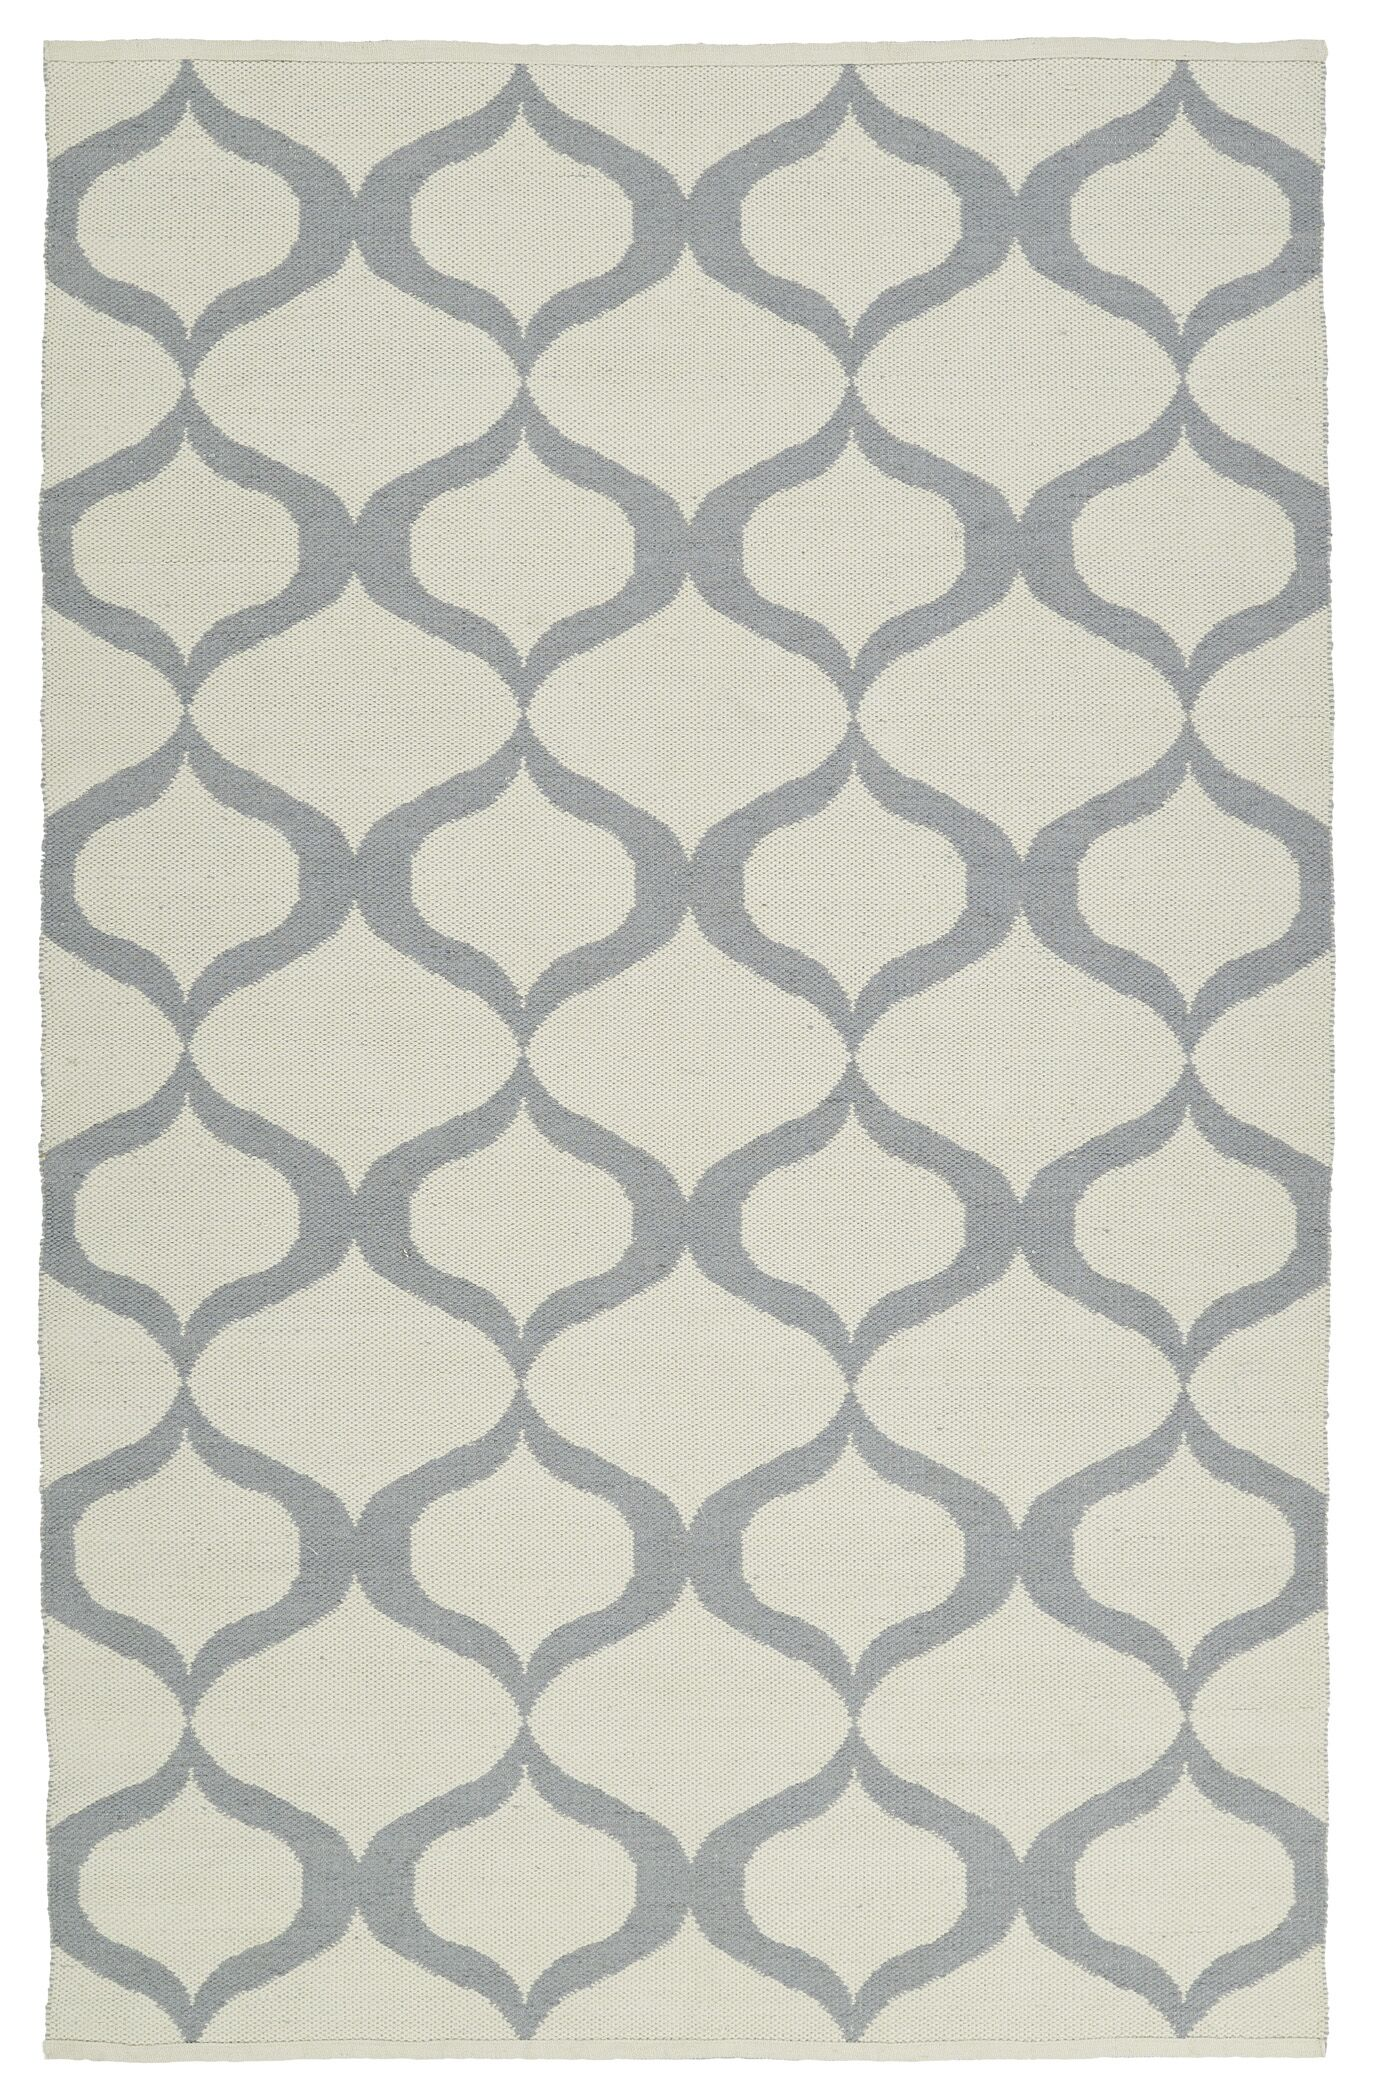 Dominic Hand-Tufted Cream/Gray Indoor/Outdoor Area Rug Rug Size: Rectangle 5' x 7'6